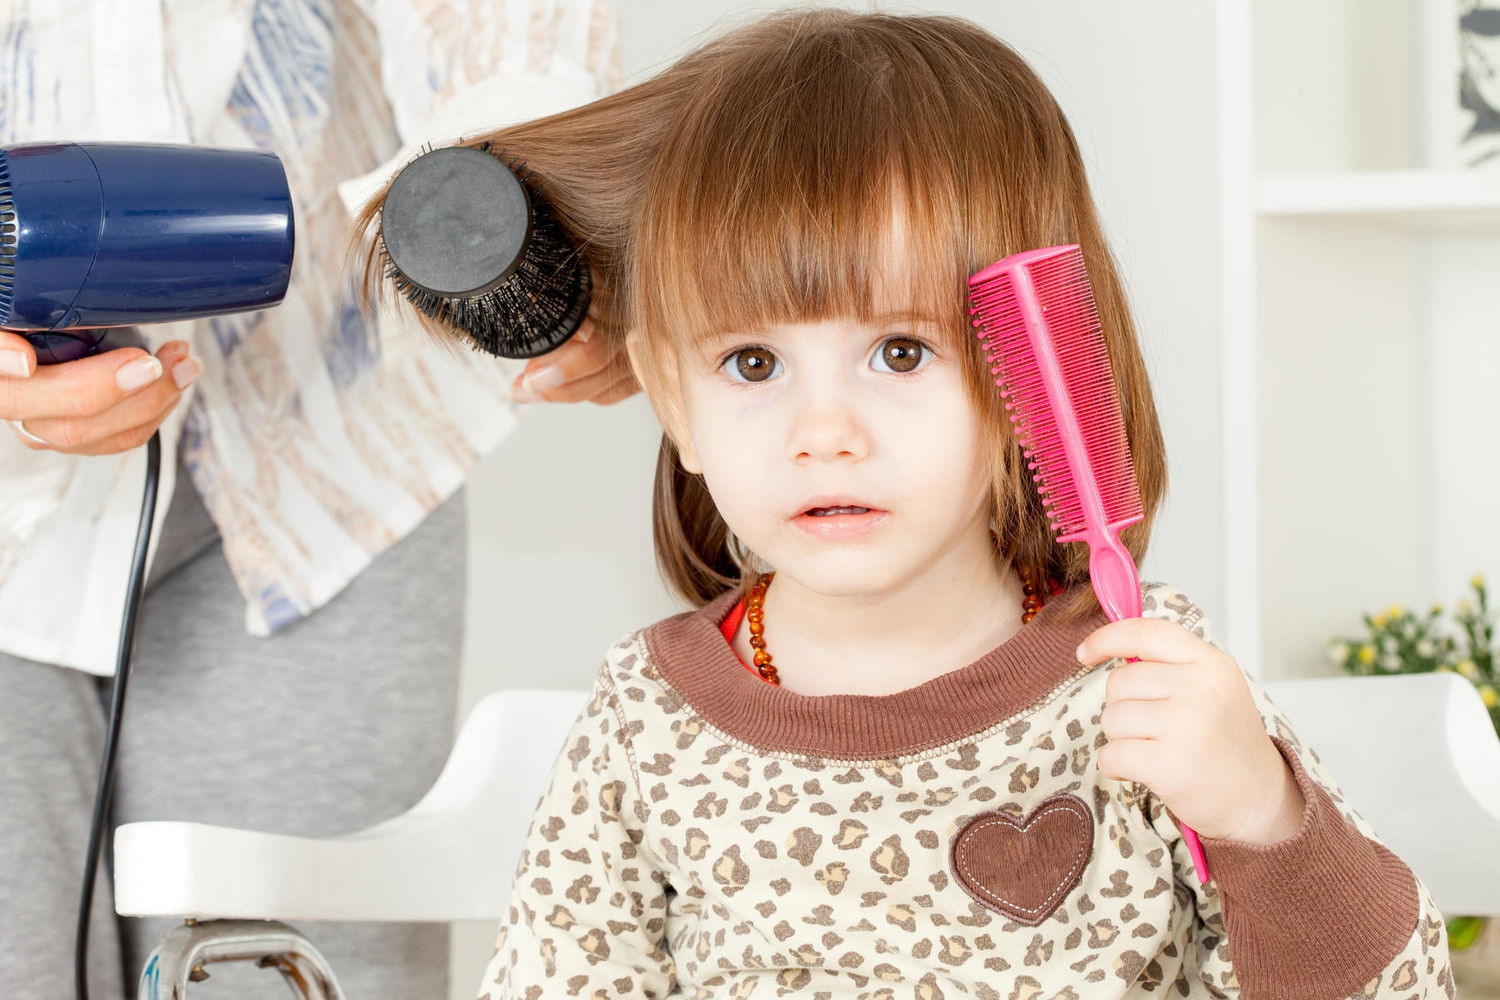 Best ideas about Toddler Girls Haircuts . Save or Pin 6 Tricks for Managing Baby Grooming Now.